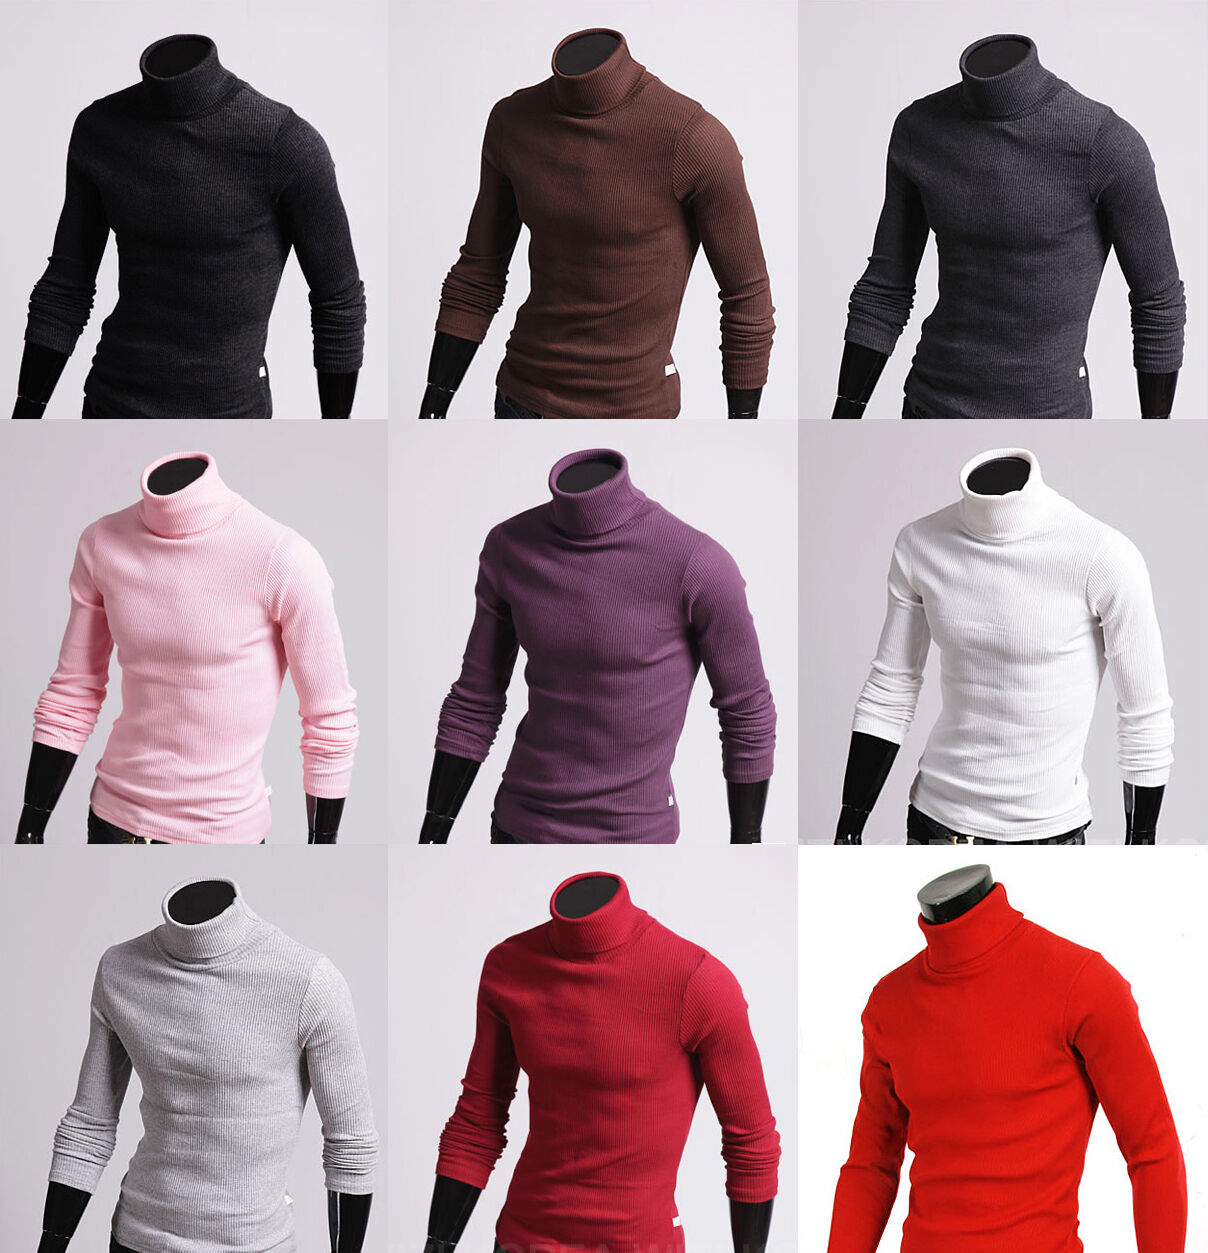 New mens turtleneck sweater shirts Cotton polo neck stretch jumper UK S M L